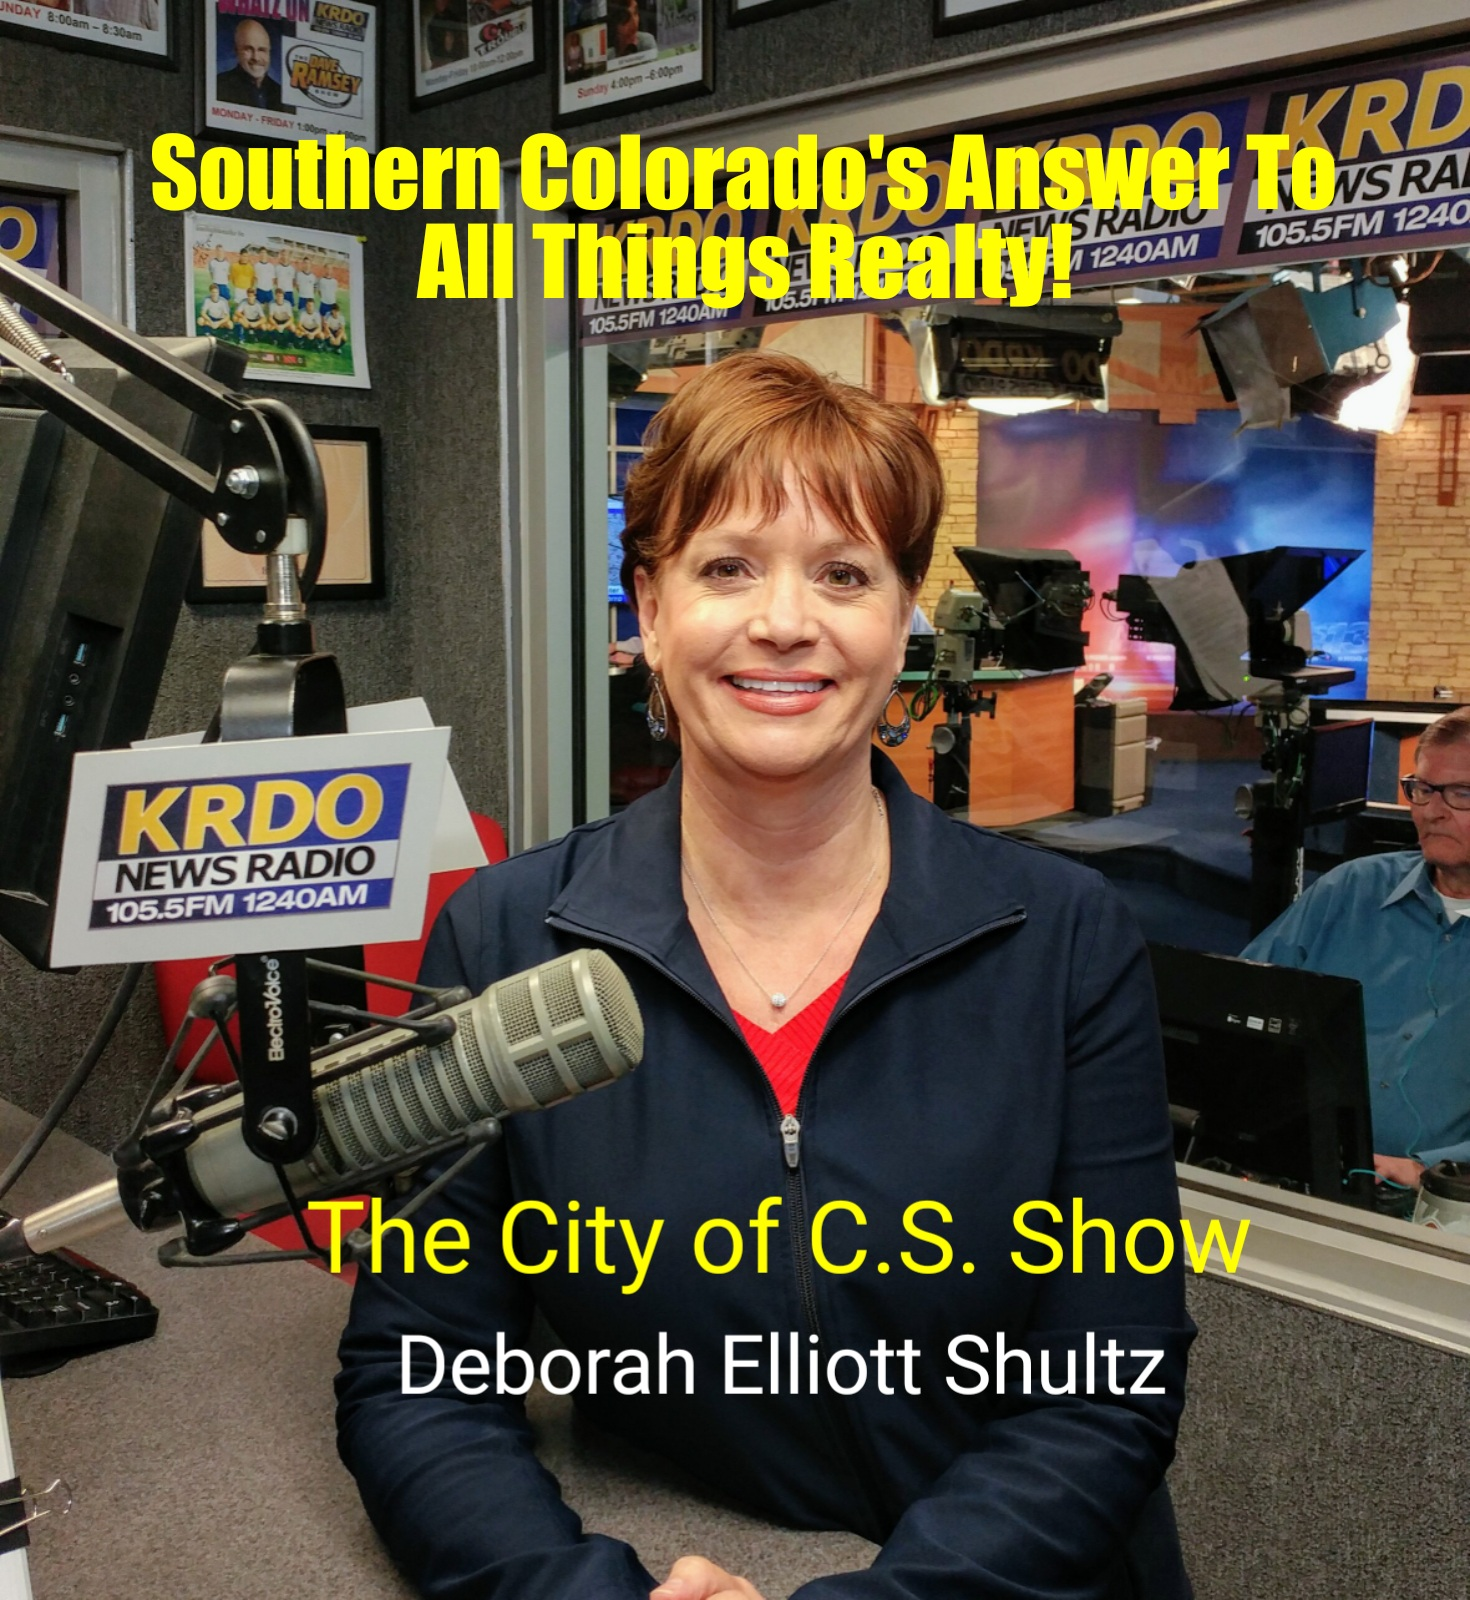 The City of C.S. Show - June 23, 2018